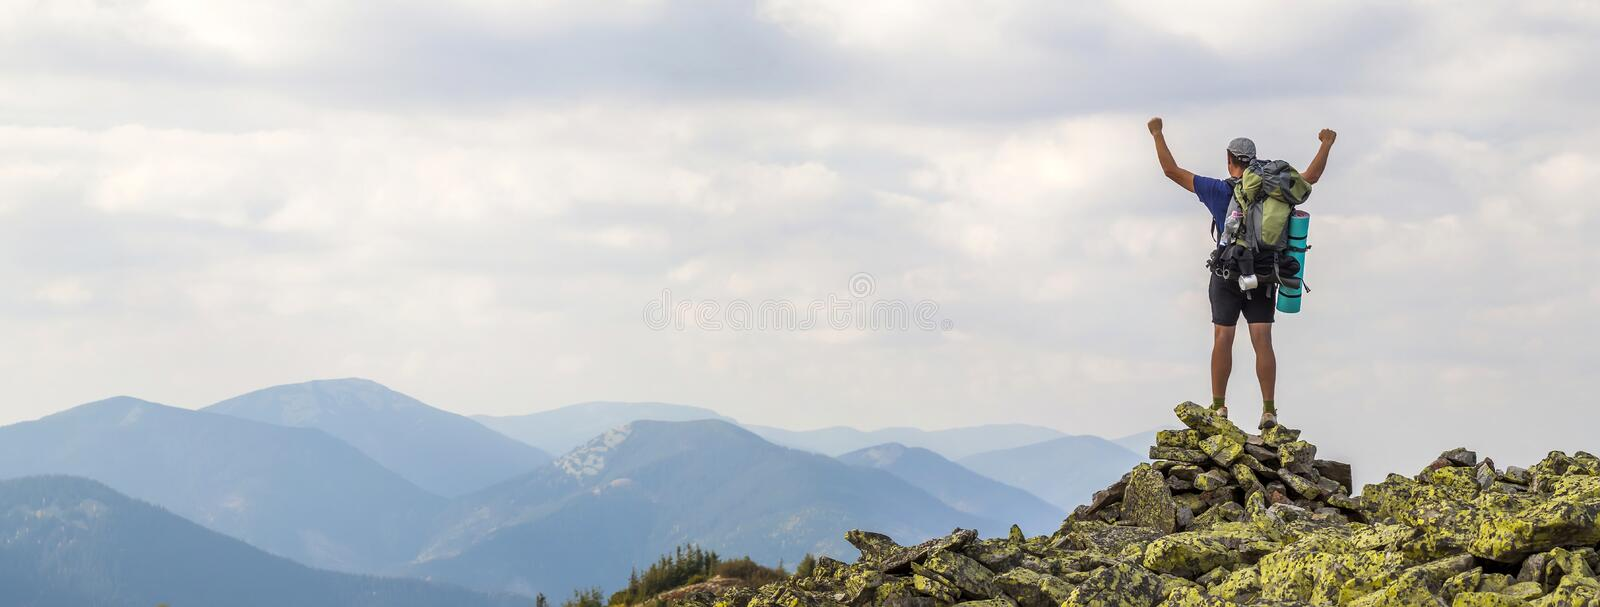 Man on peak of mountain. Emotional scene. Young man with backpack standing with raised hands on top of a mountain and enjoying mo royalty free stock photo